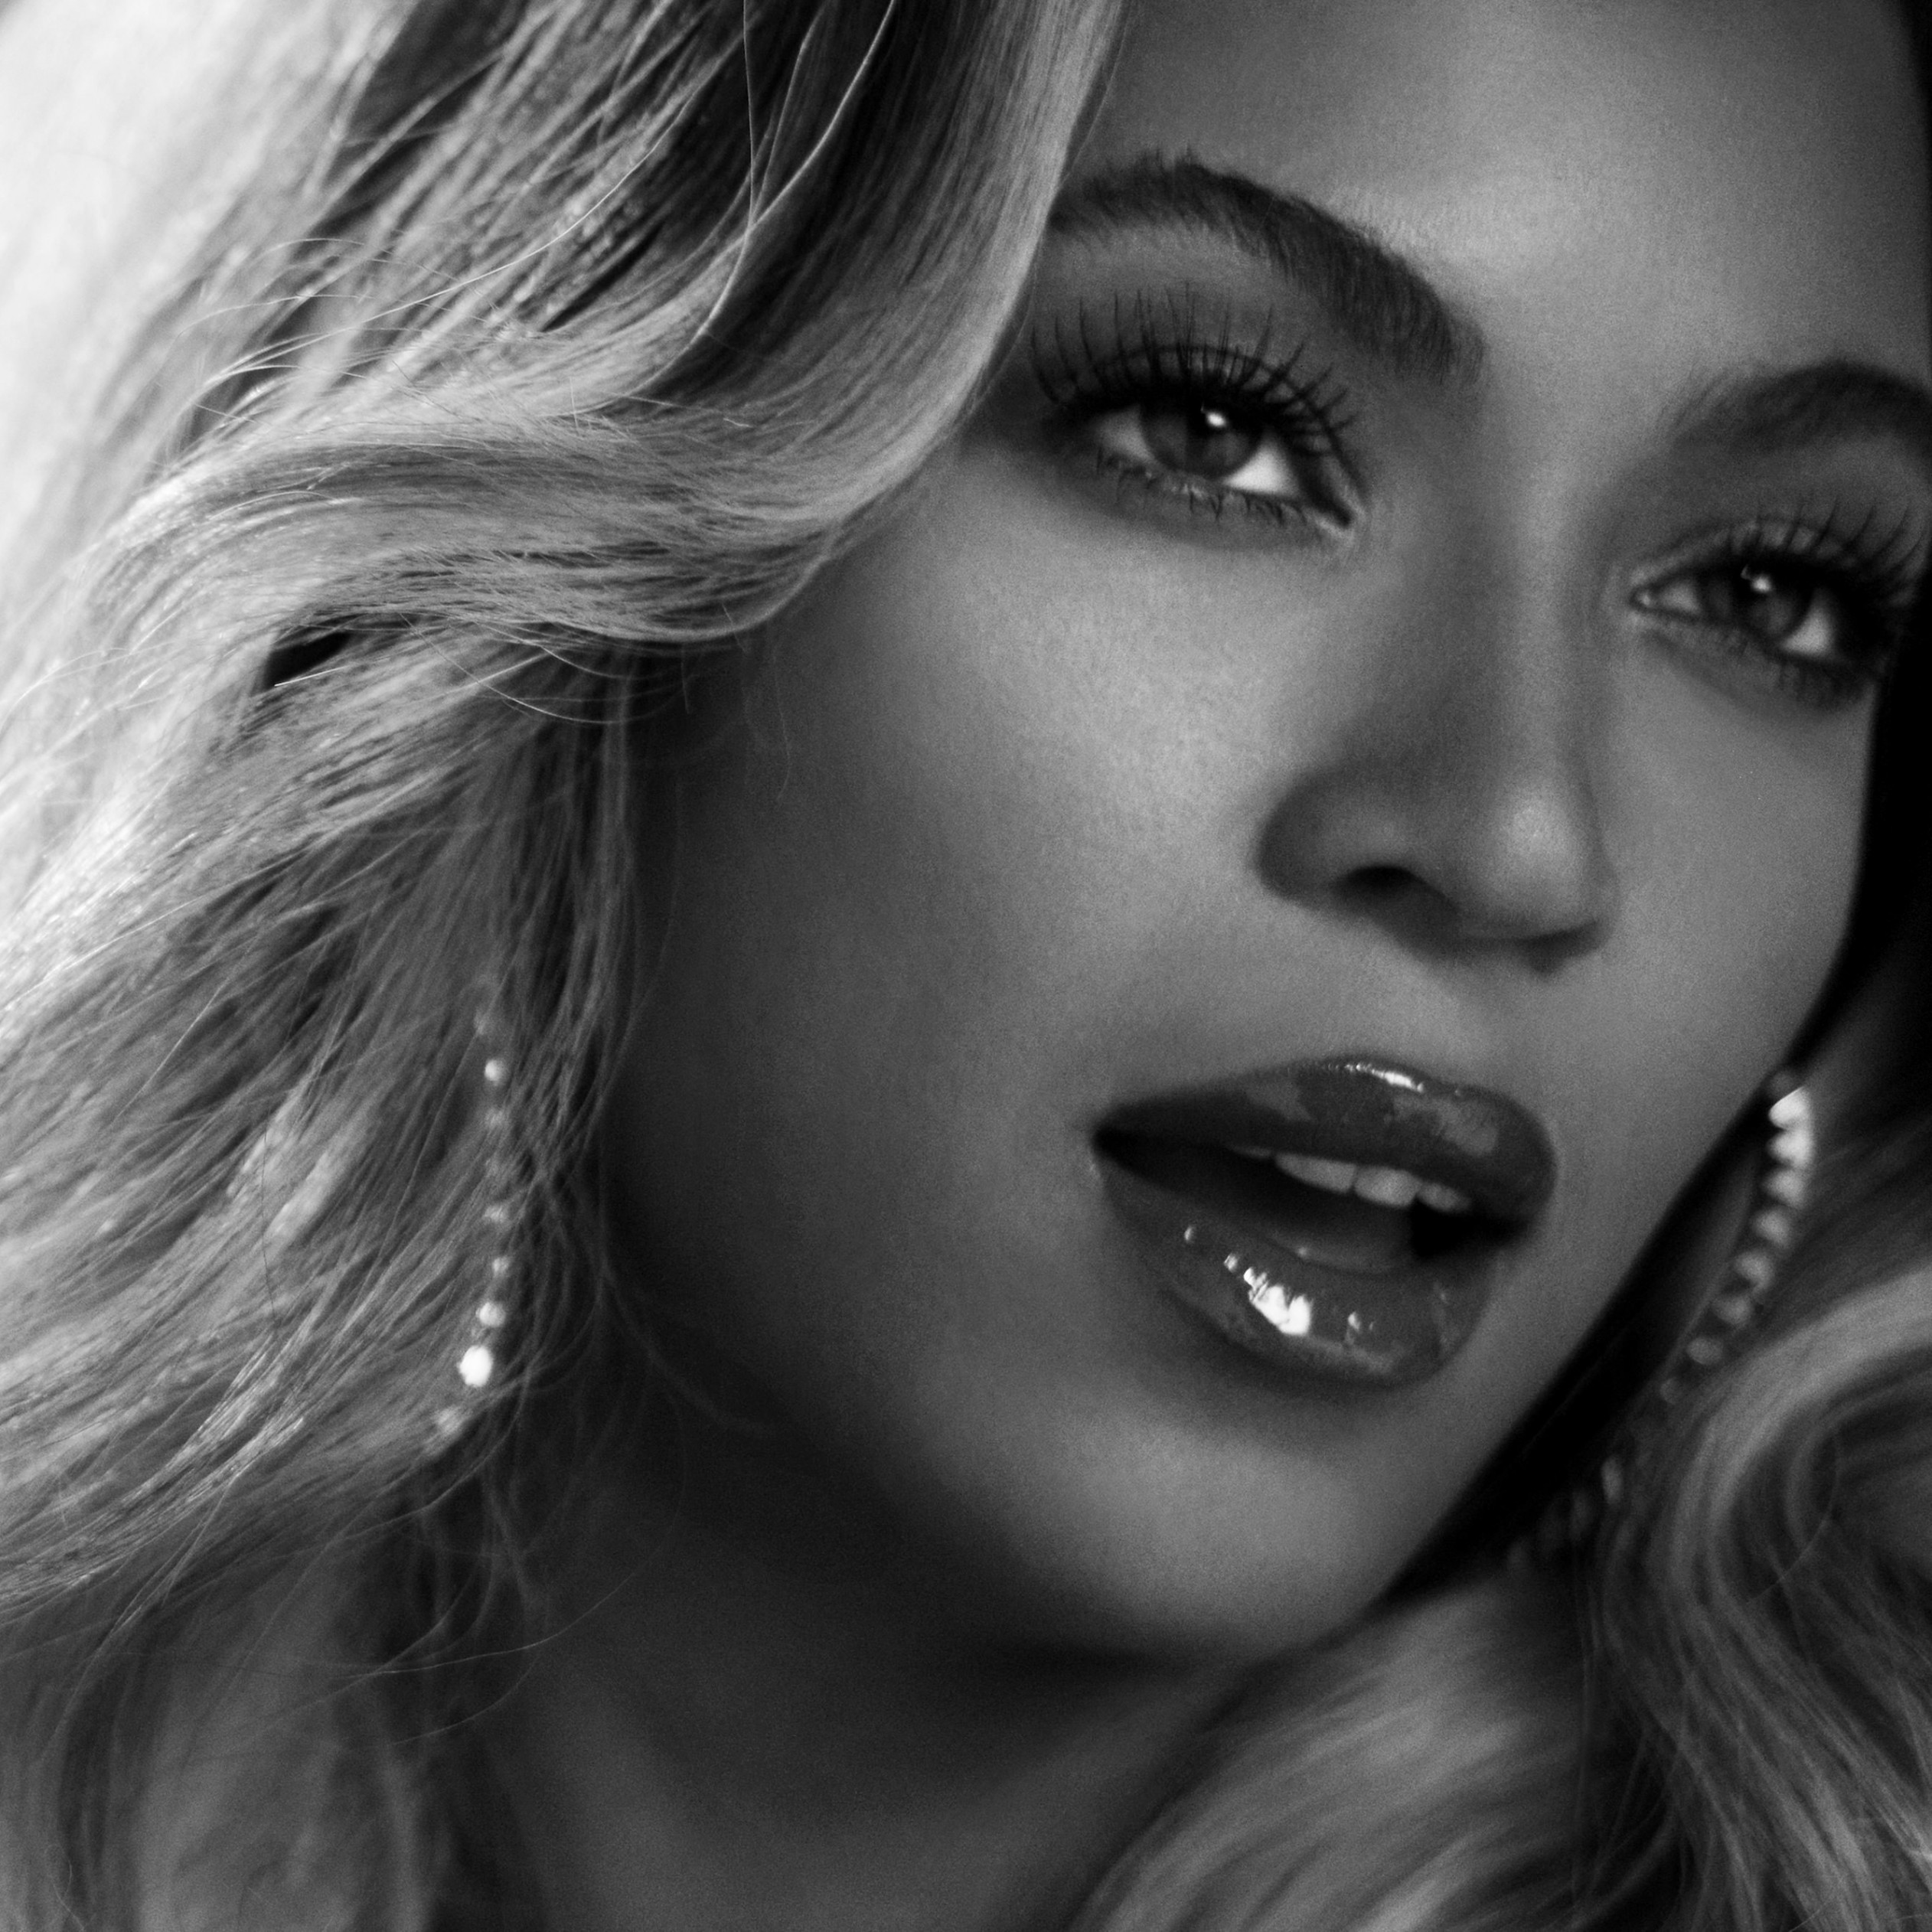 Beyonce in Black & White Wallpaper for Apple iPad 3